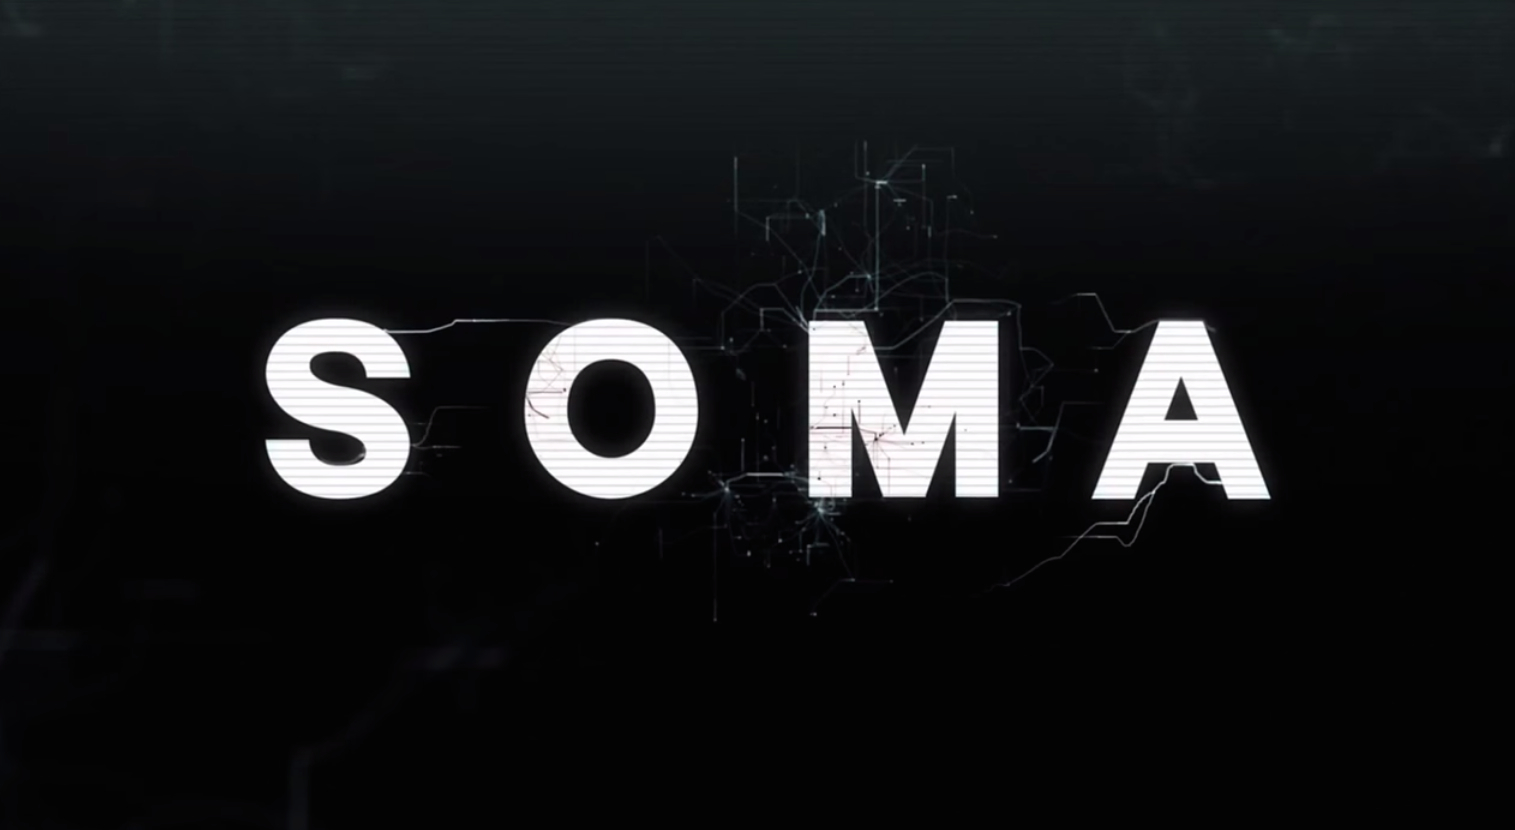 E3 2015: Check out 12 minutes of gameplay from SOMA